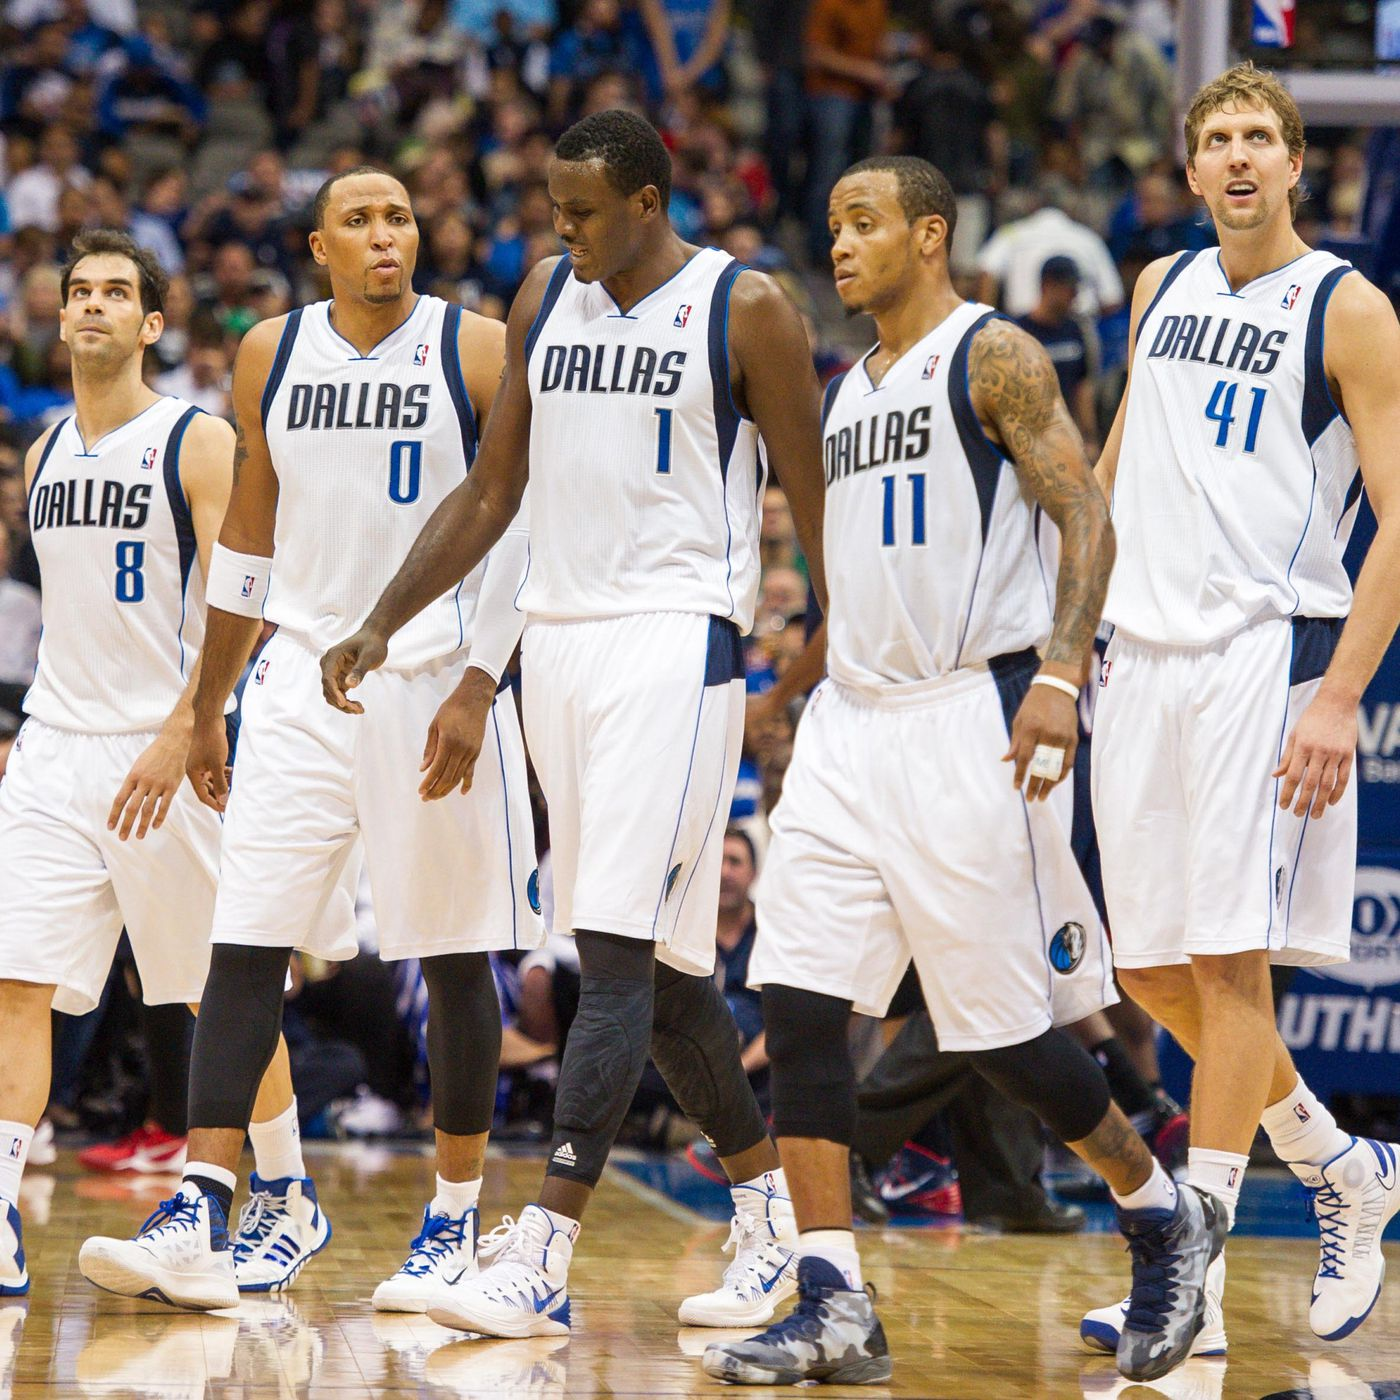 Mavericks vs  Nuggets preview: Monta Ellis, Dirk Nowitzki